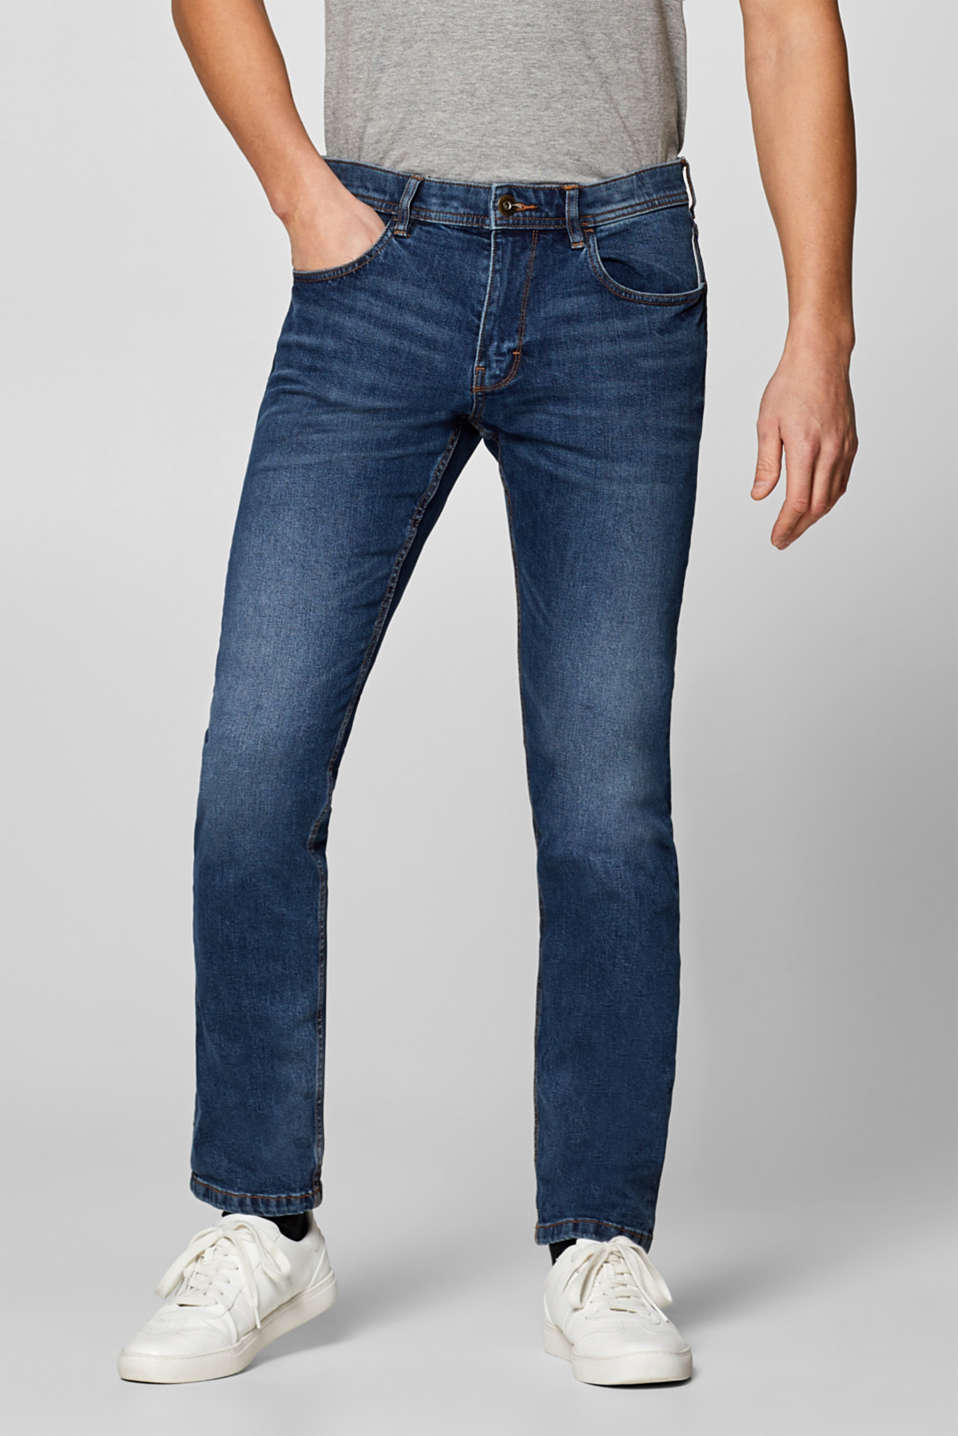 edc - Vintage wash stretch jeans